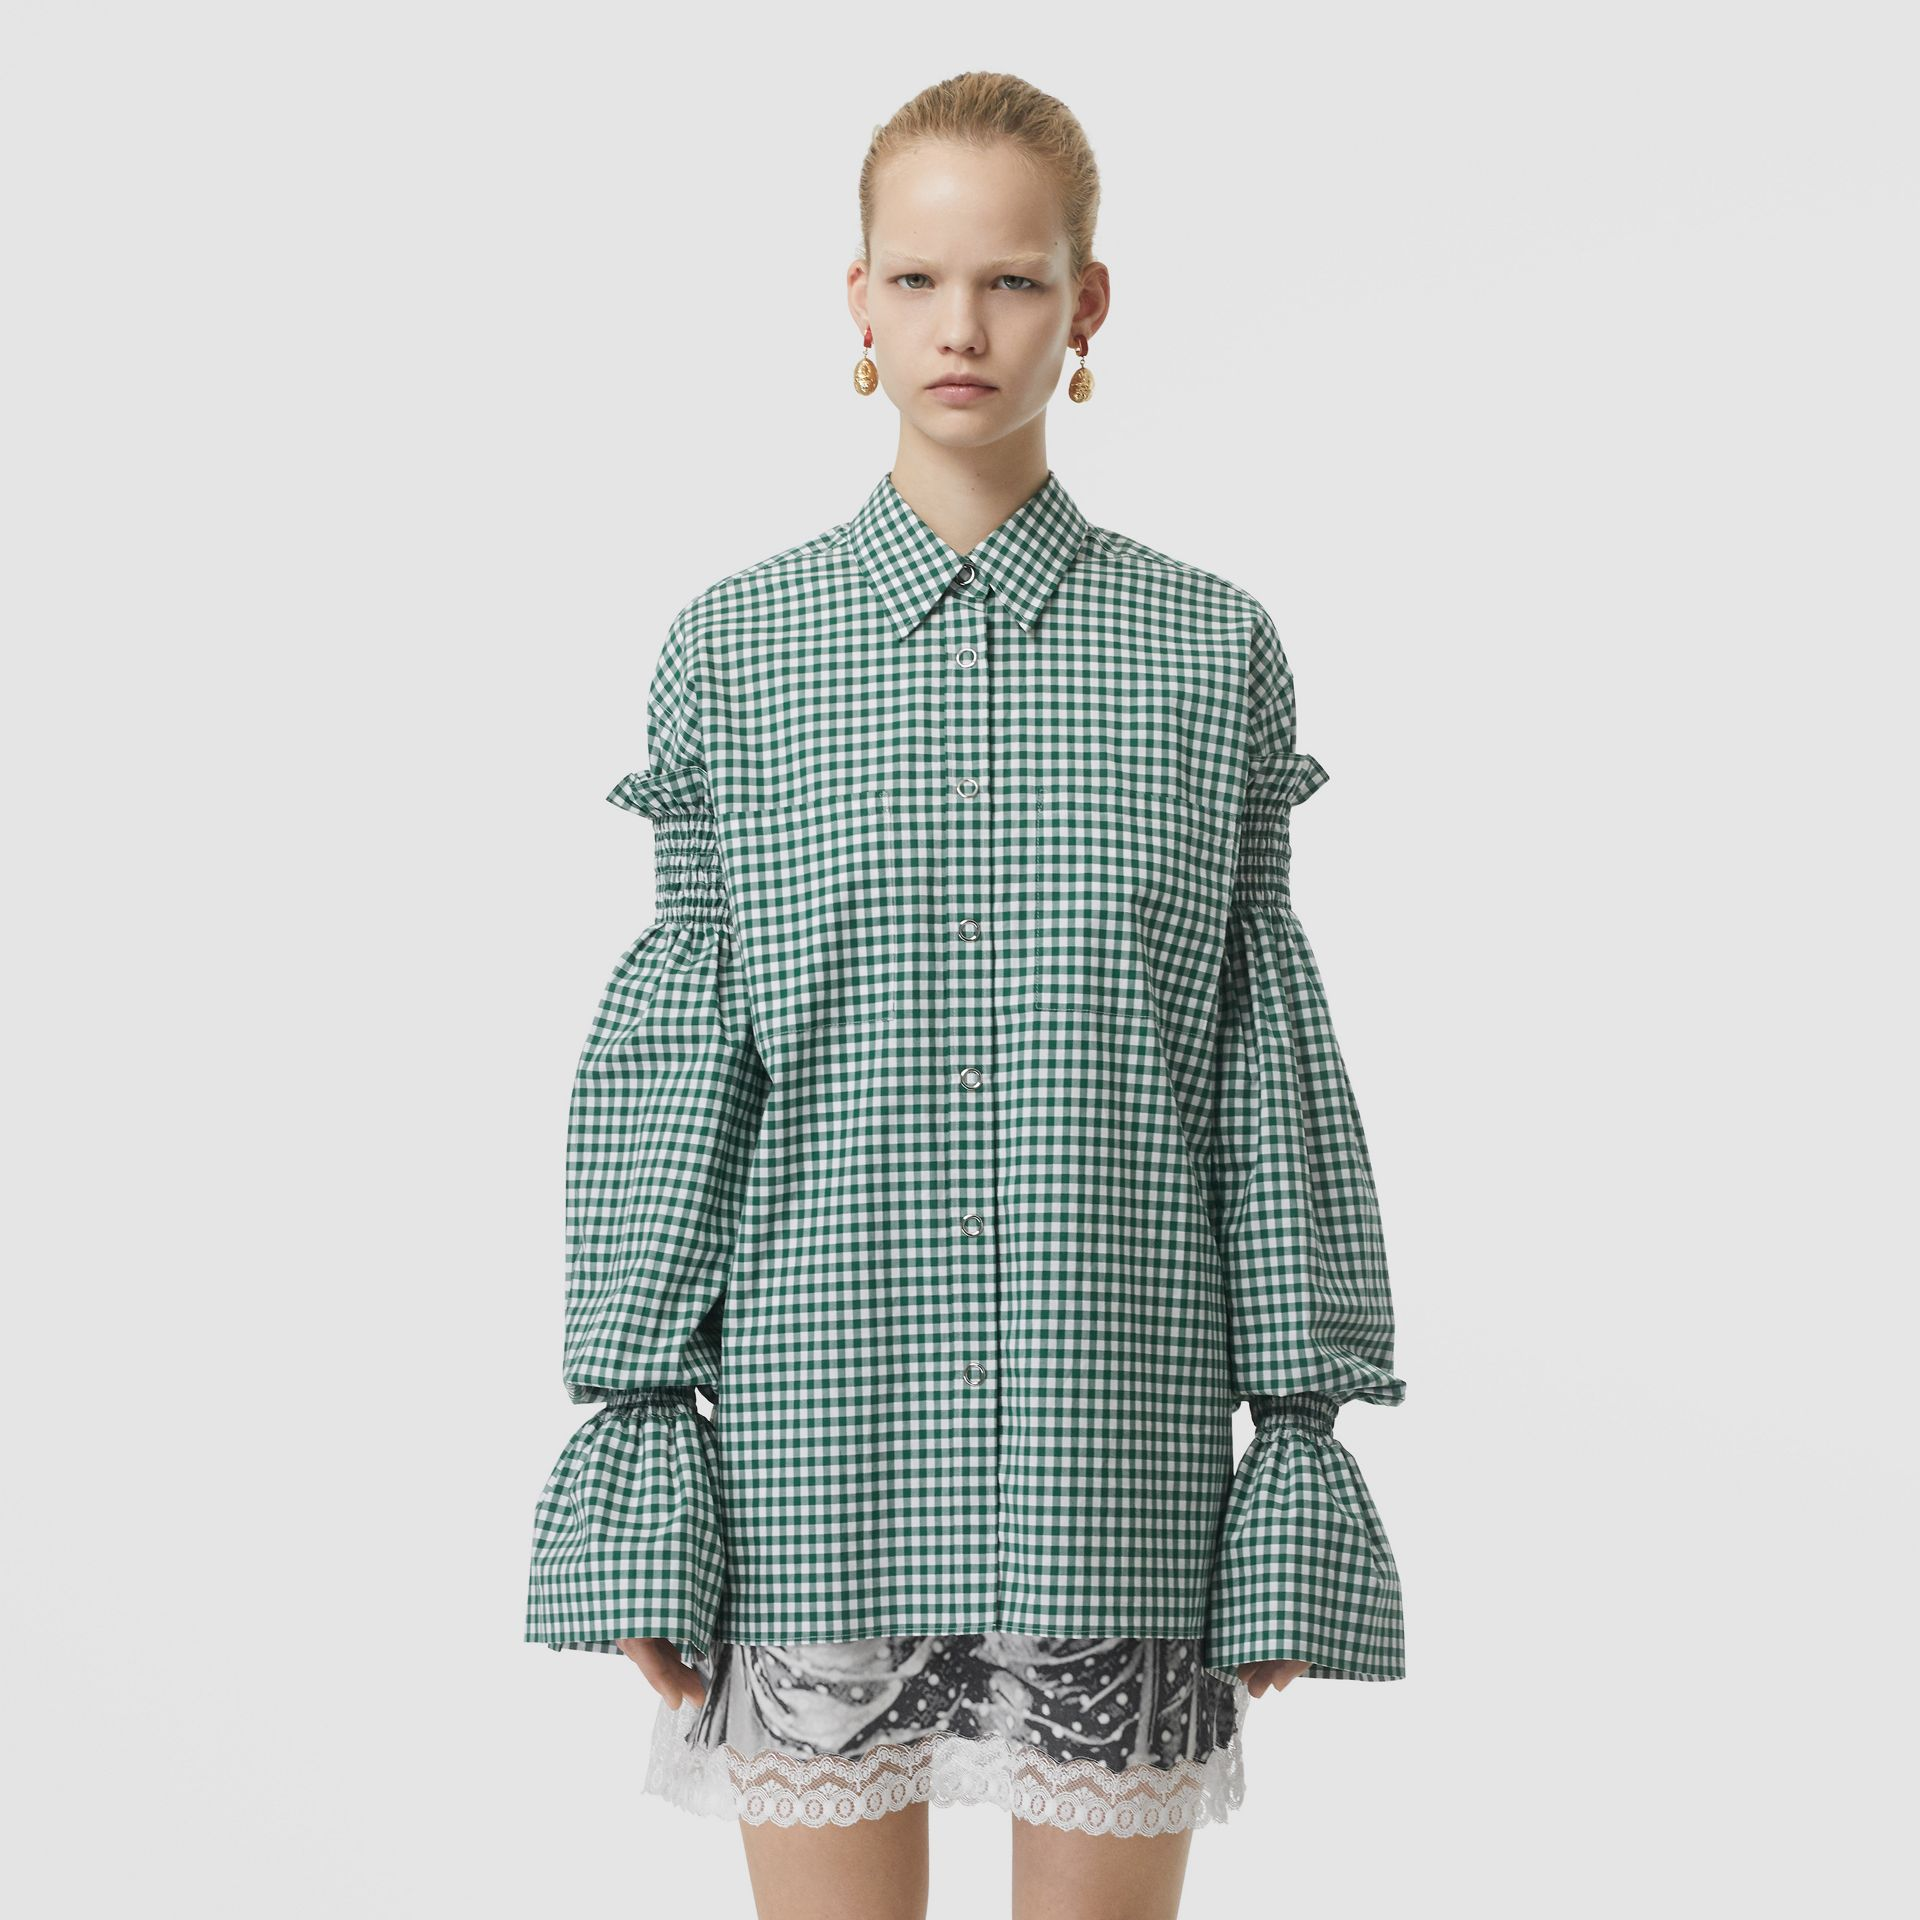 Puff-sleeve Gingham Cotton Shirt in White/green - Women | Burberry - gallery image 5